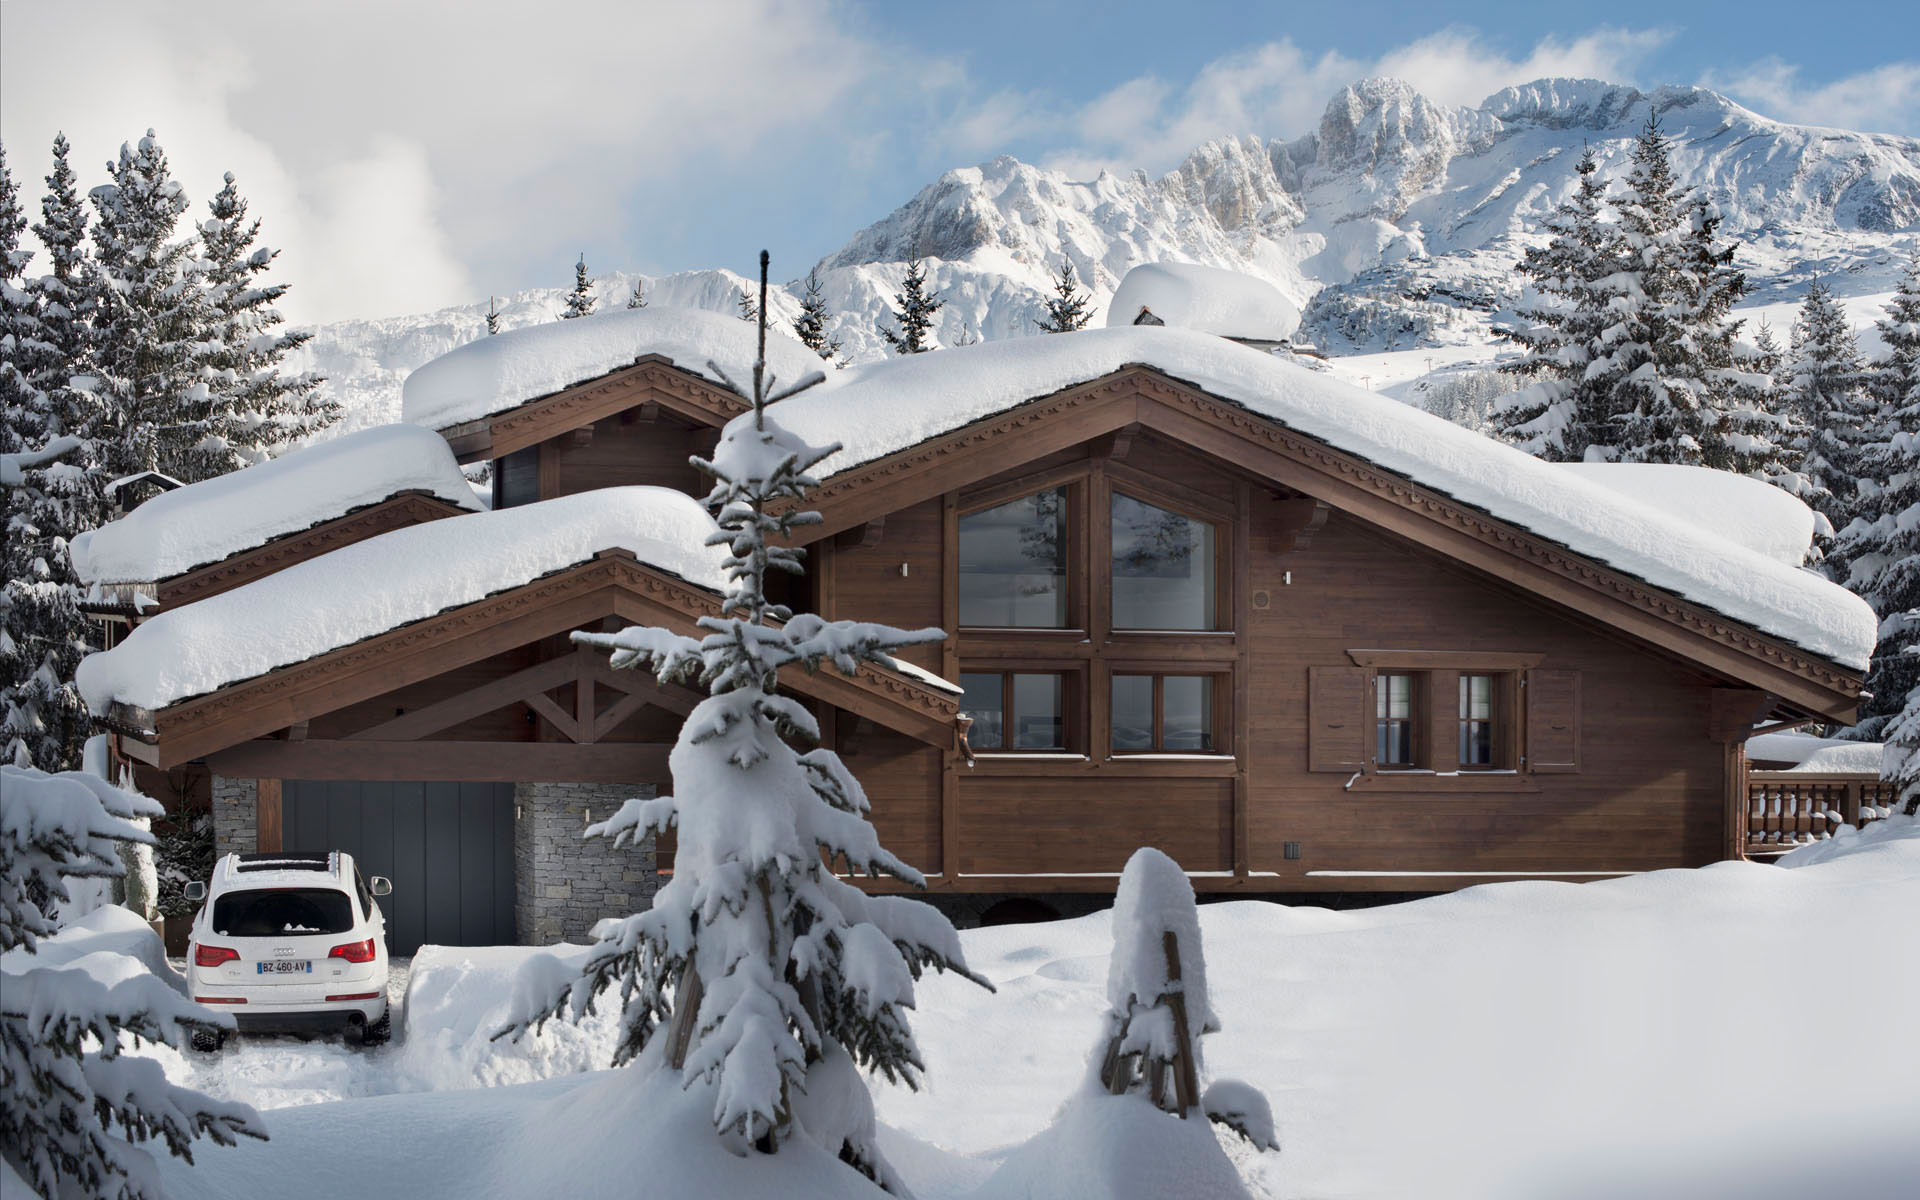 Chalet le coquelicot caandesign architecture and home for Mtn chalet